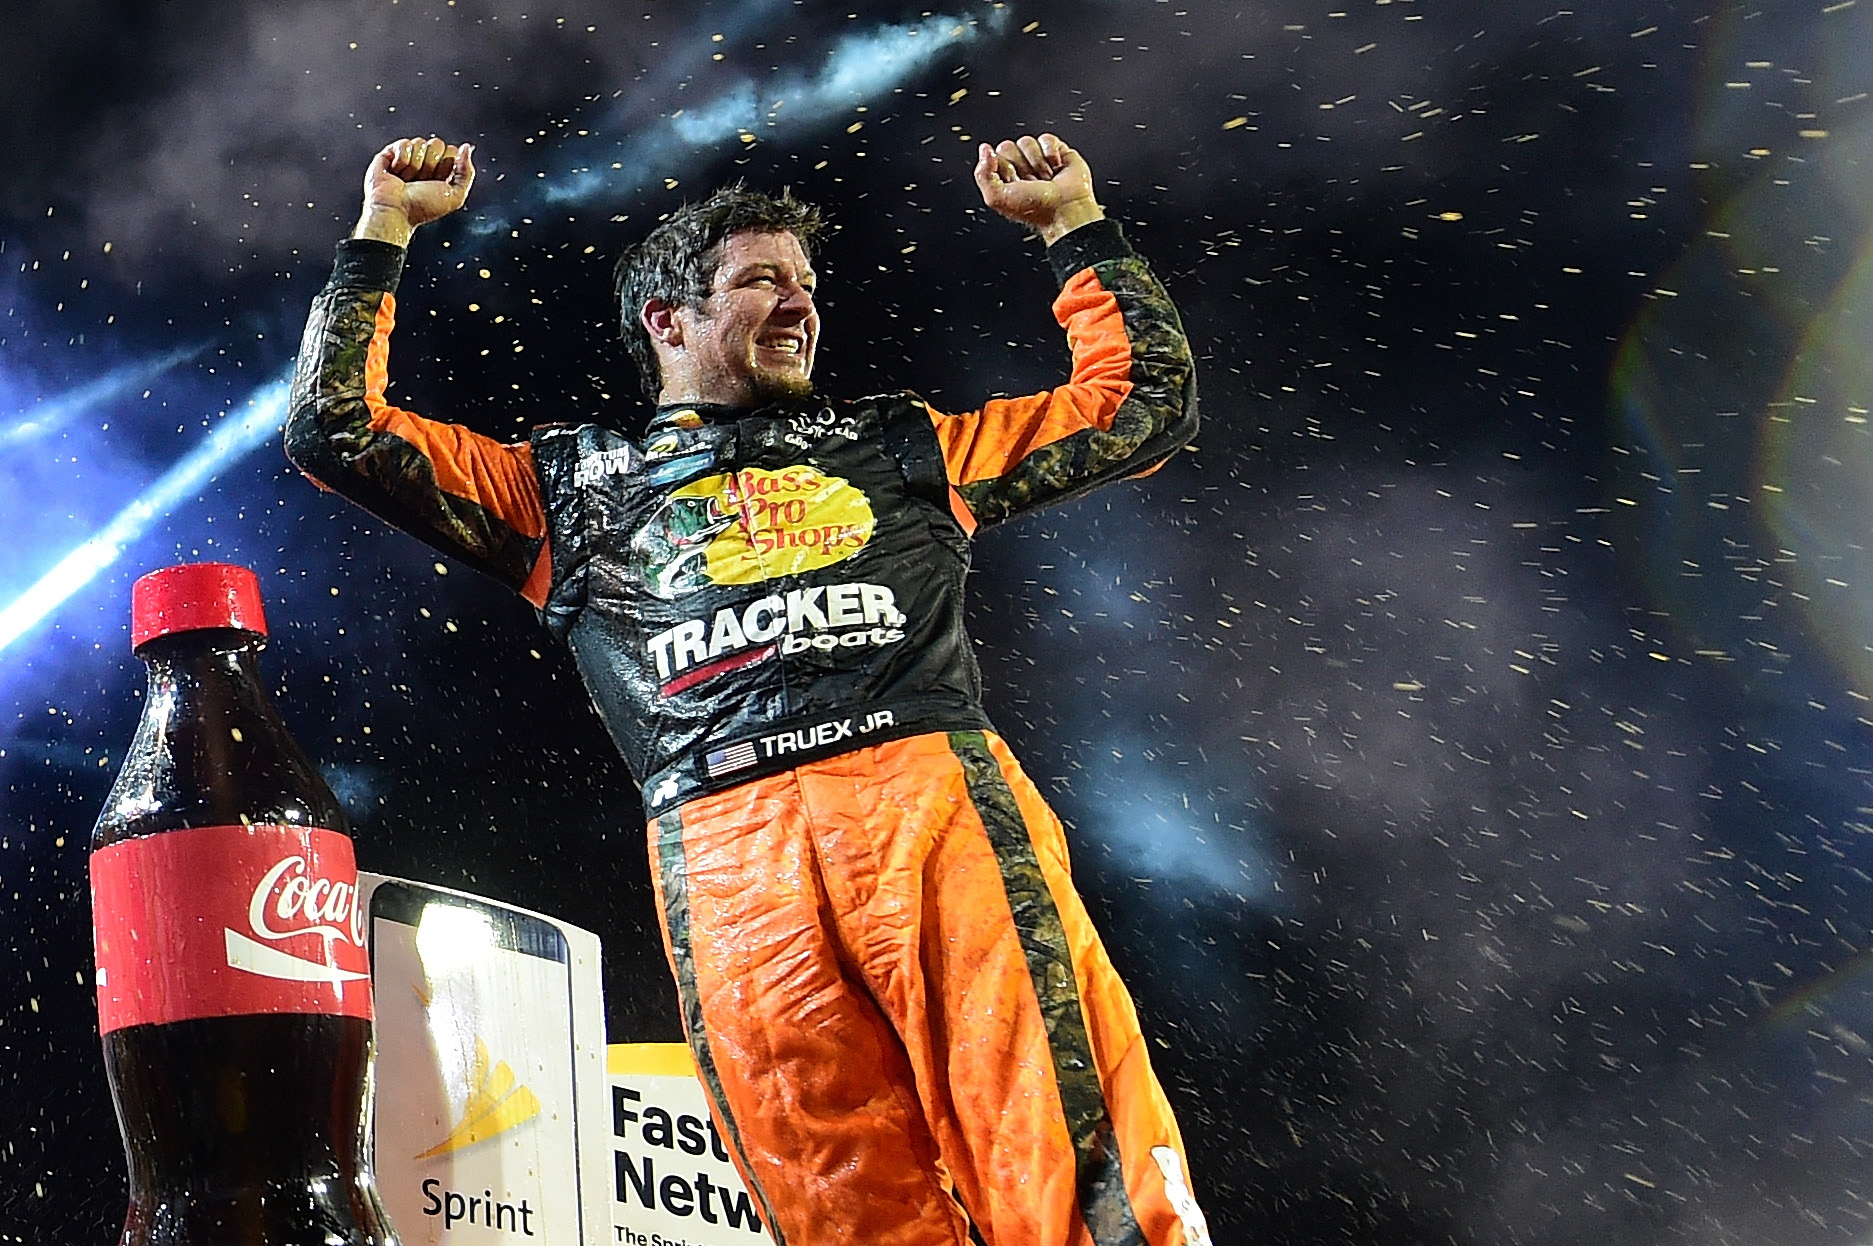 CHARLOTTE, NC - MAY 29: Martin Truex Jr., driver of the #78 Bass Pro Shops/Tracker Toyota, celebrates with champagne in Victory Lane after winning the NASCAR Sprint Cup Series Coca-Cola 600 at Charlotte Motor Speedway on May 29, 2016 in Charlotte, North Carolina. (Photo by Jared C. Tilton/Getty Images)